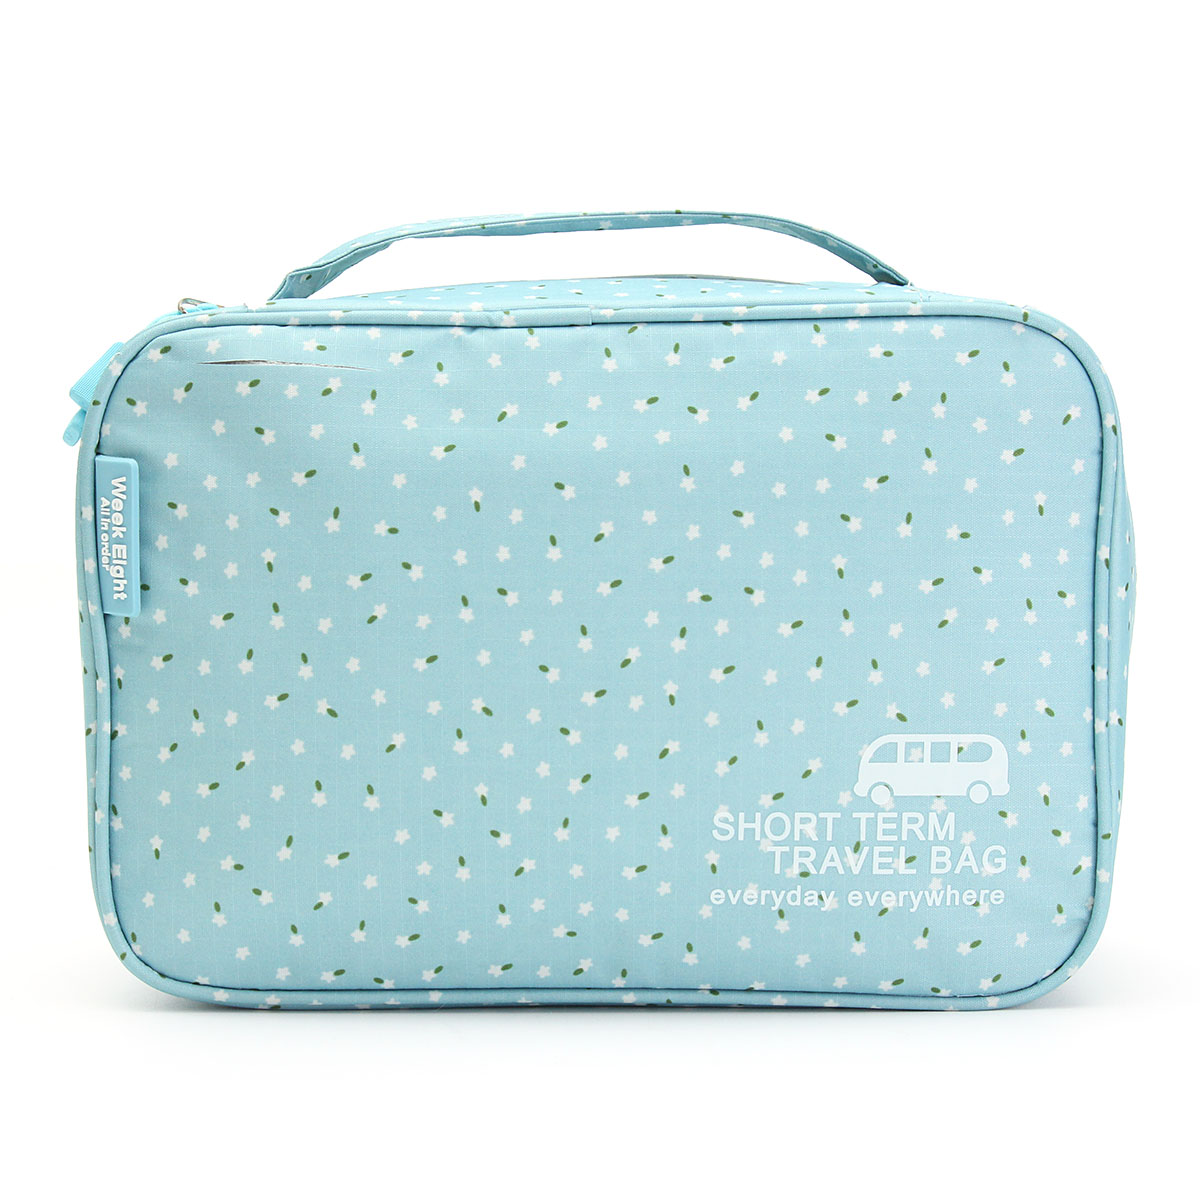 Waterproof Expandabl Travel Hanging Wash Bag Toiletry Ladies Women Make Up Pouch